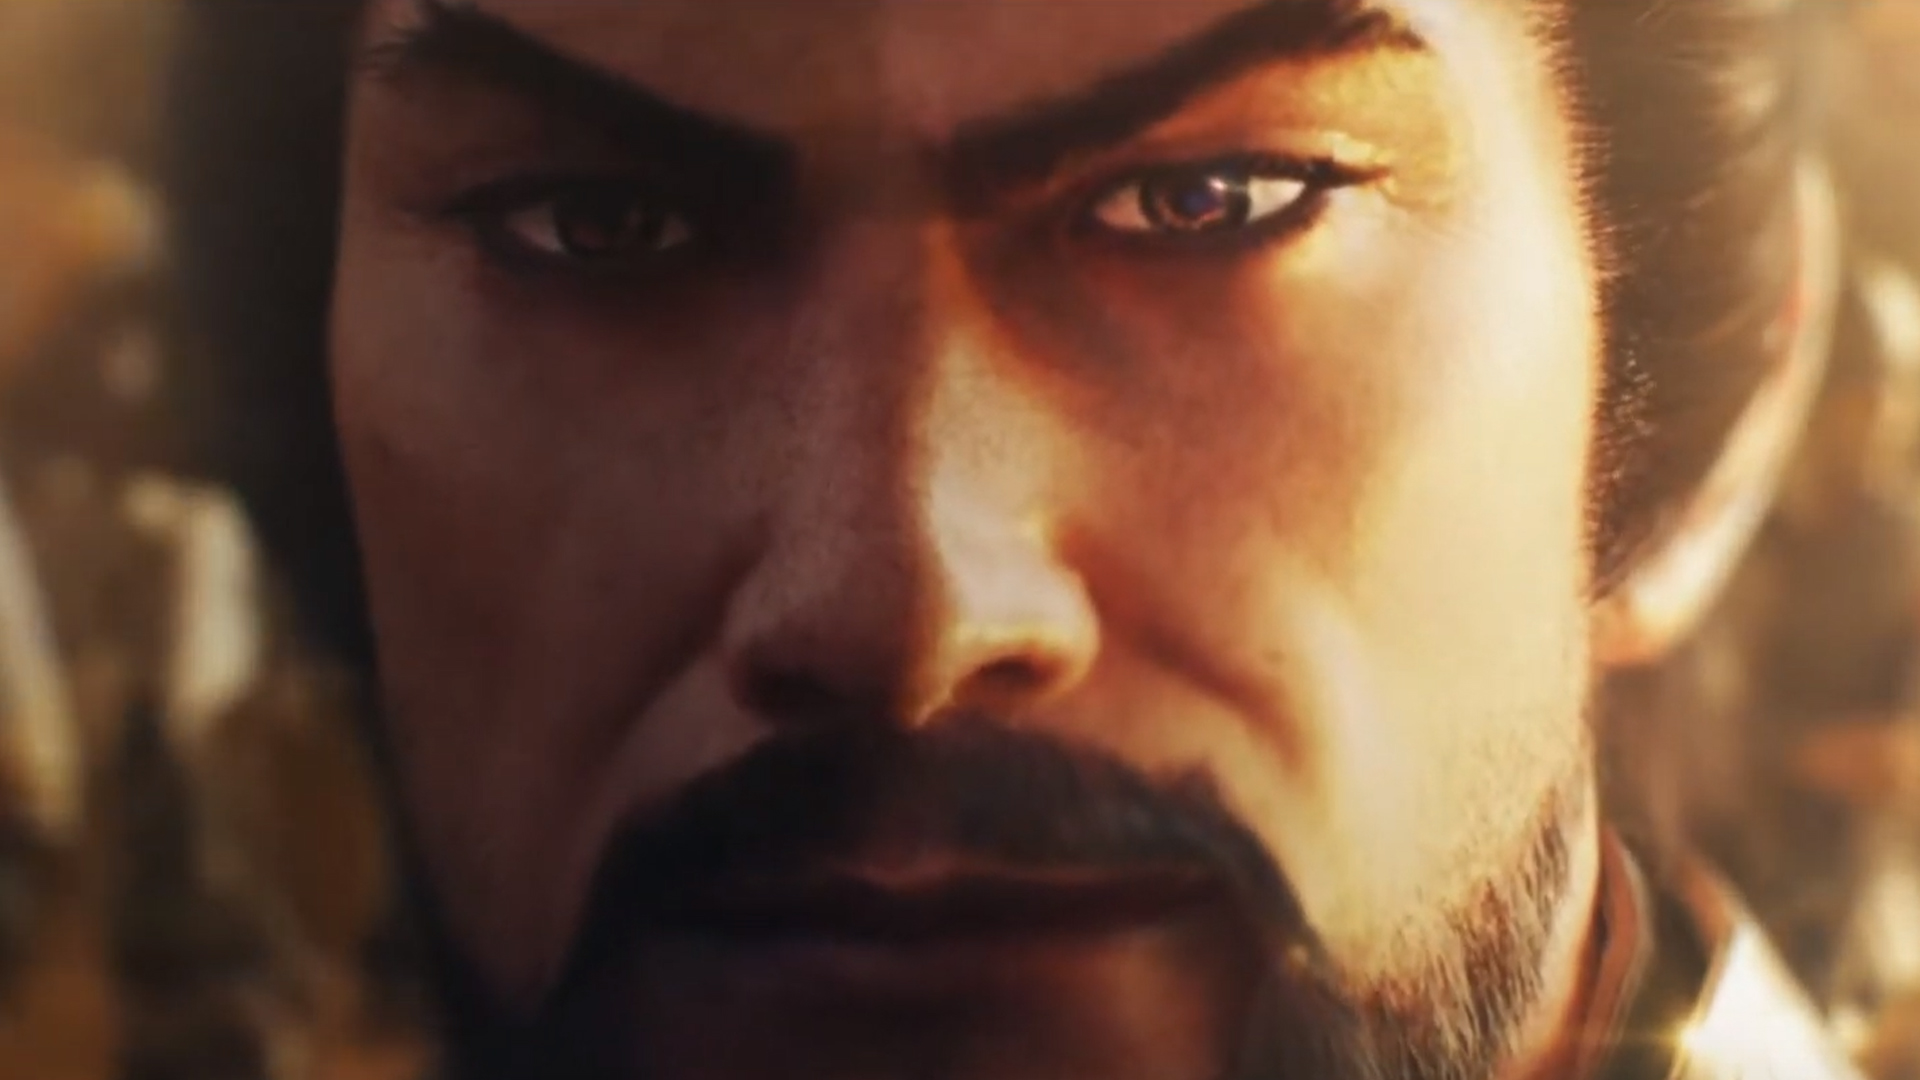 This exceptionally short trailer reminds us Romance of the Three Kingdoms XIV is coming screenshot